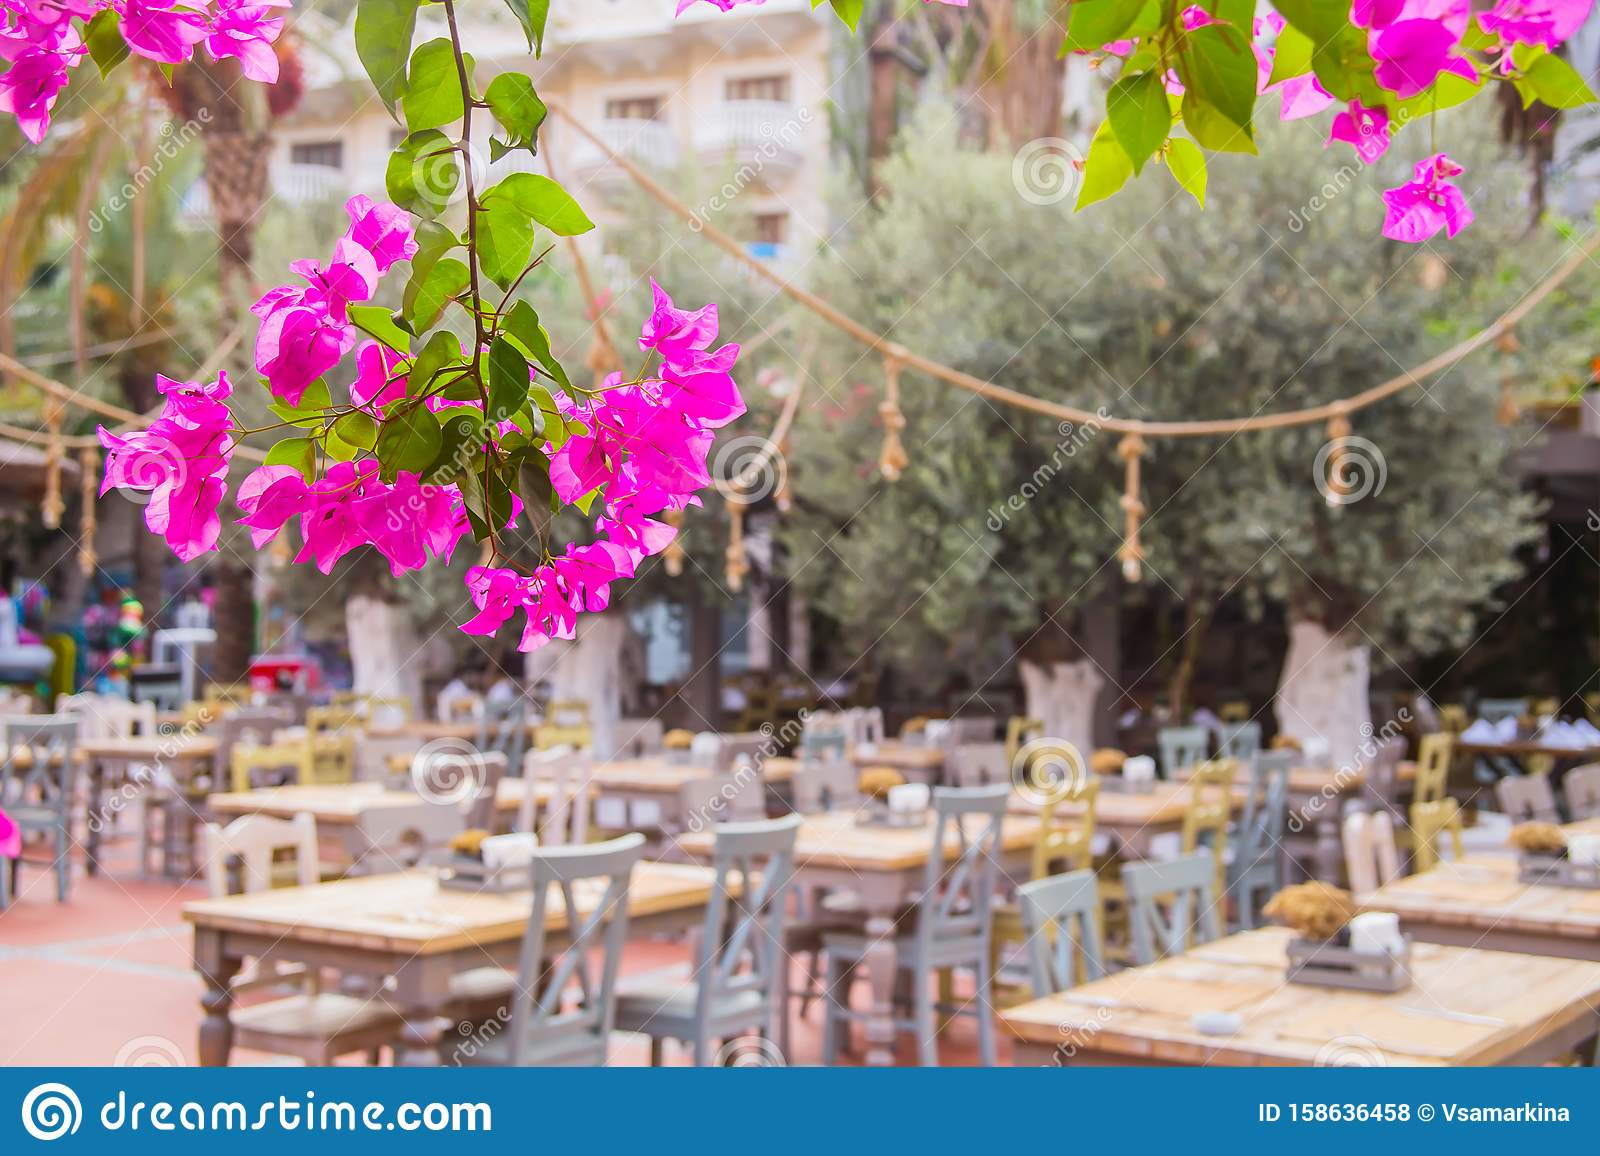 Street Restaurant With Eco Wooden Tables Natural Style Stock Photo Image Of Hotel Garden 158636458